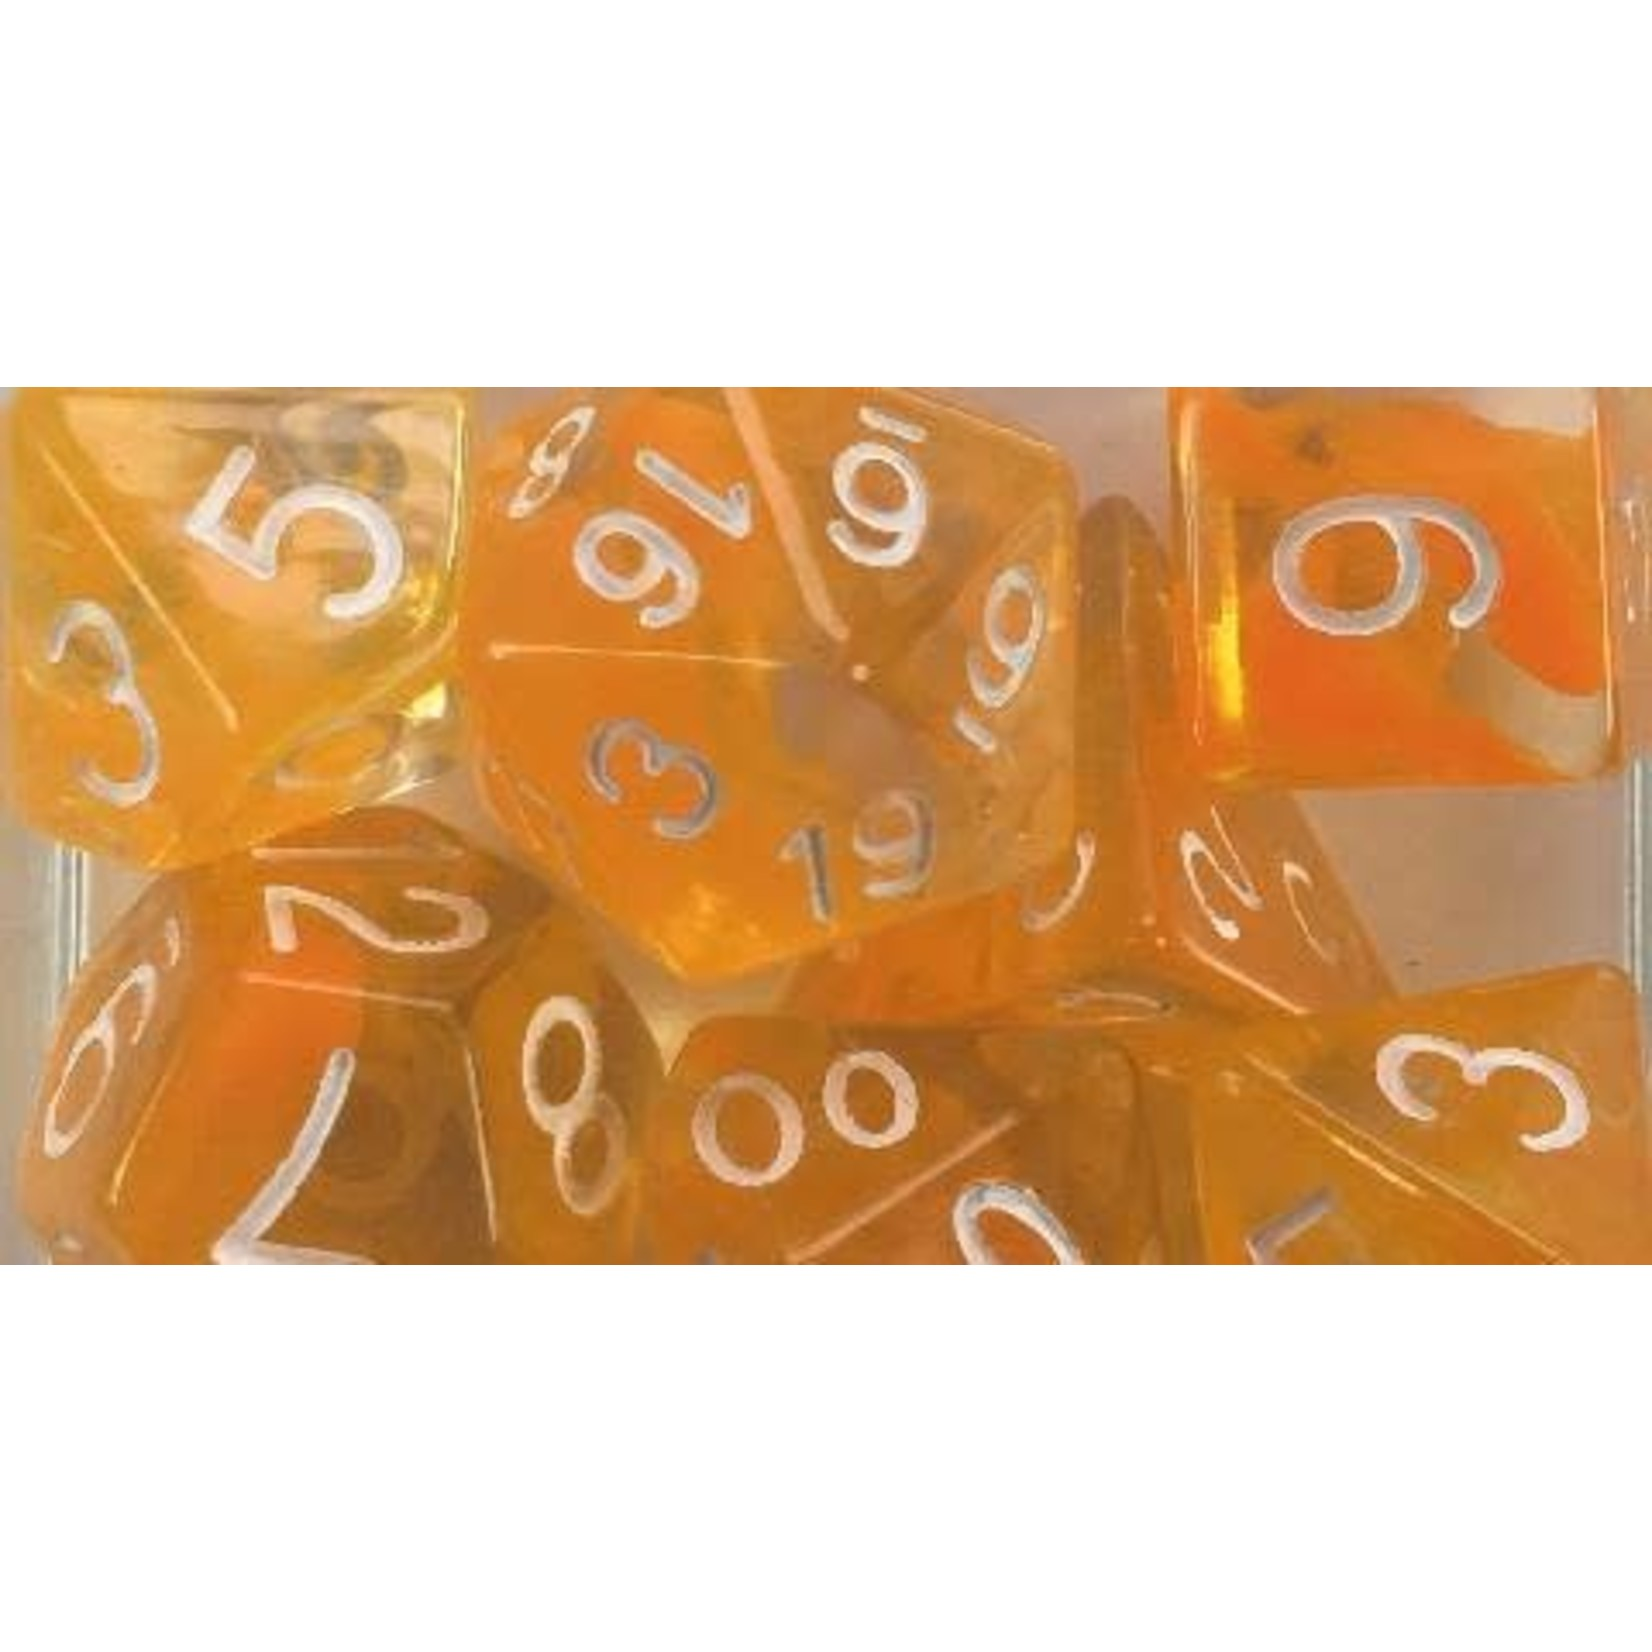 Roll 4 Initiative Polyhedral Dice: Diffusion Citrus White - Set of 15